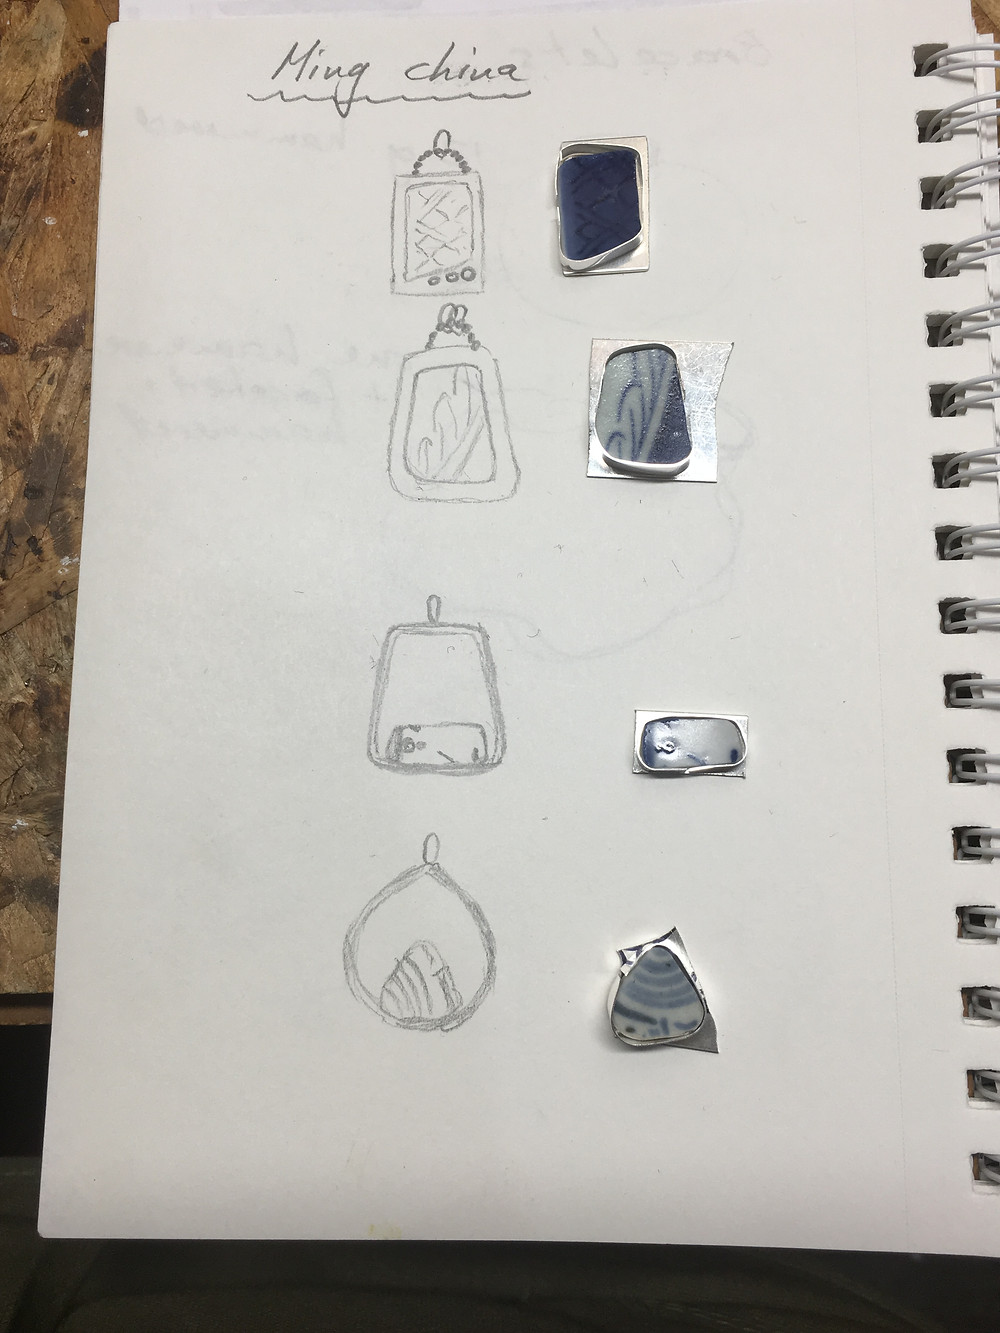 jewelry sketches for Ming china from shipwreck